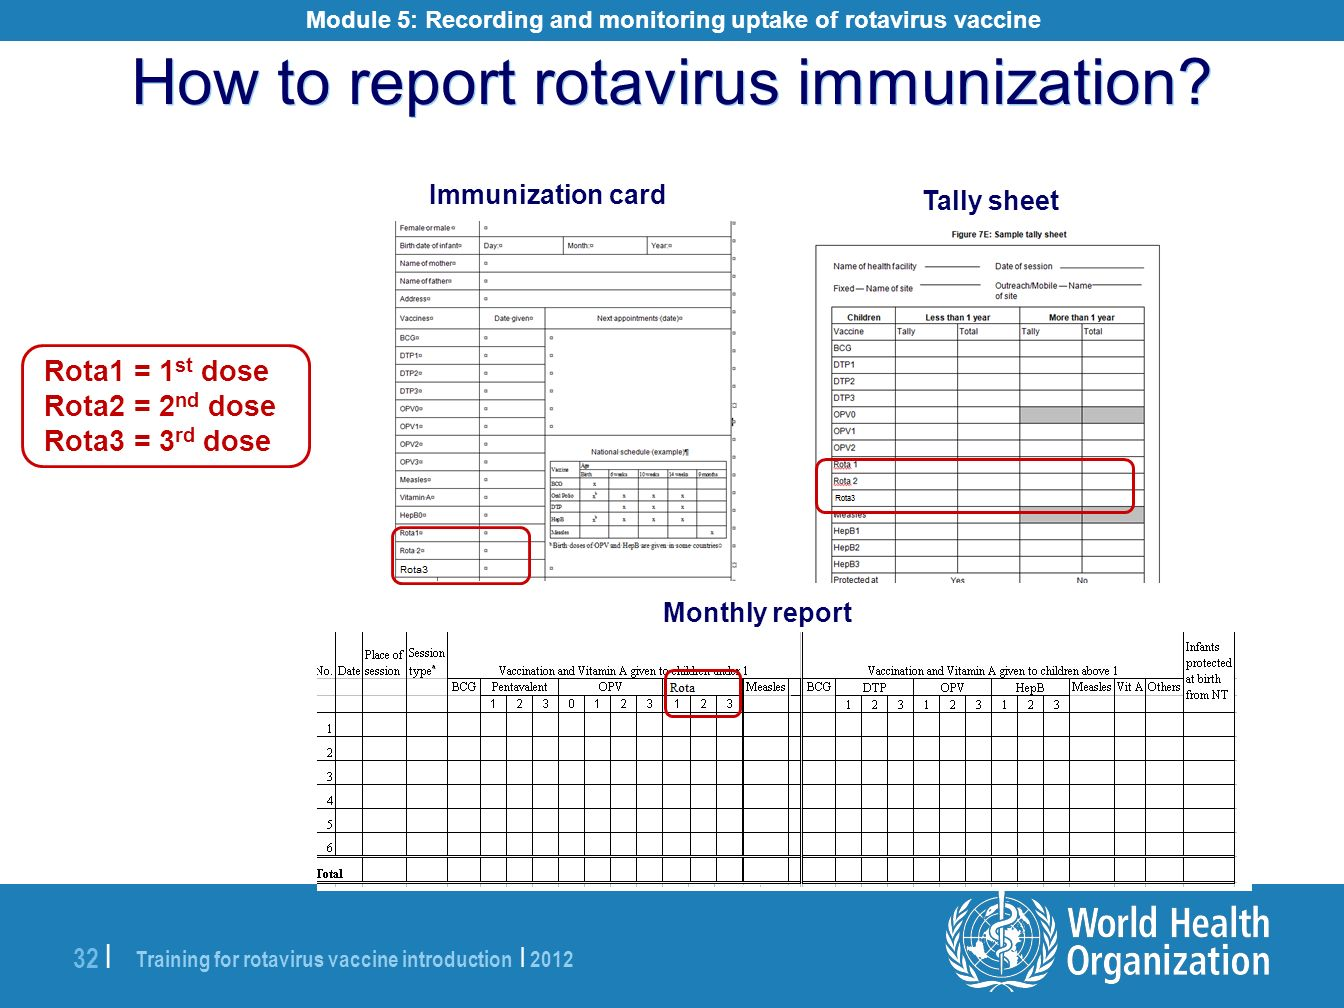 Module 5: Recording and monitoring uptake of rotavirus vaccine